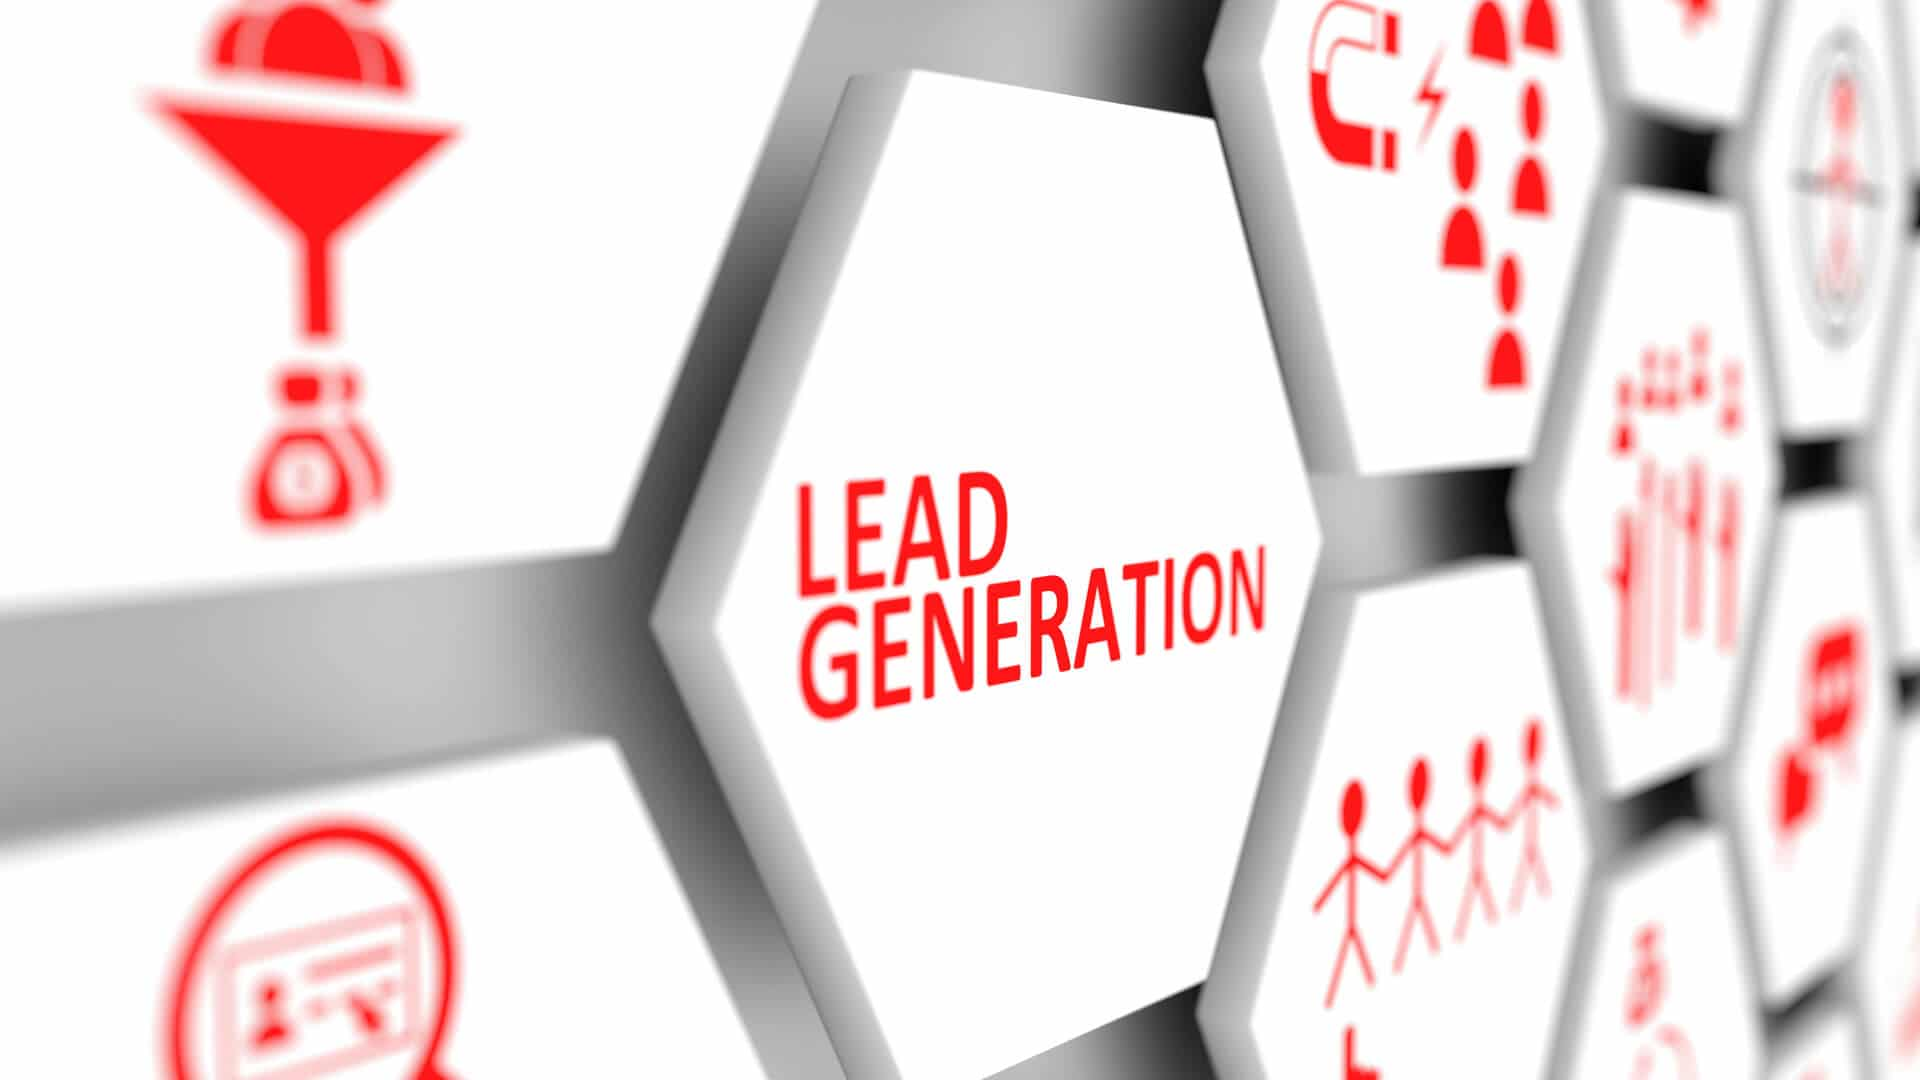 Lead Generation Tips Header Image